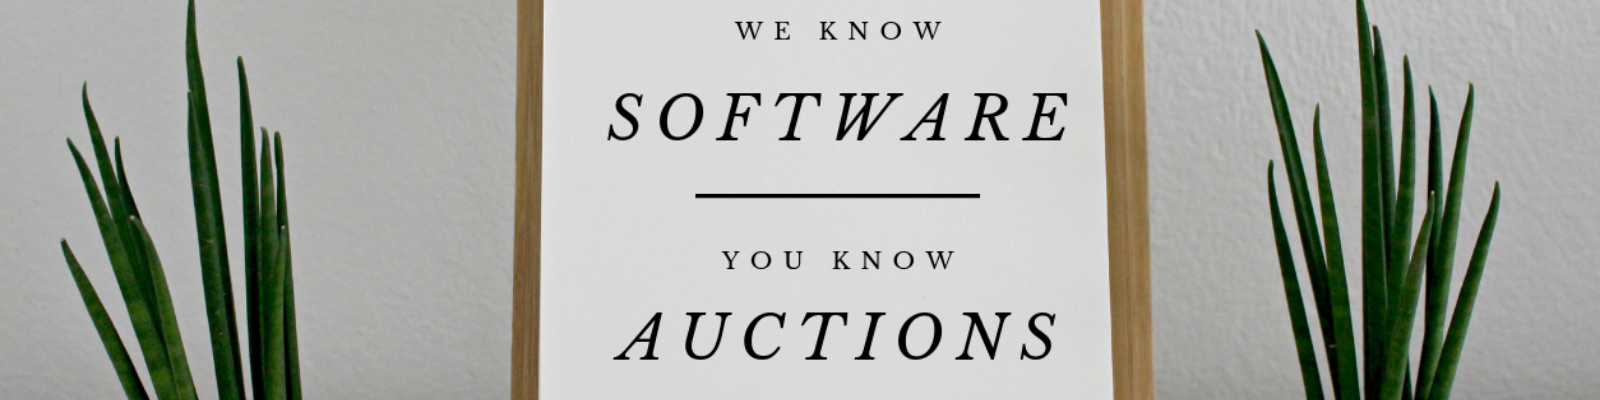 we know software you know auctions